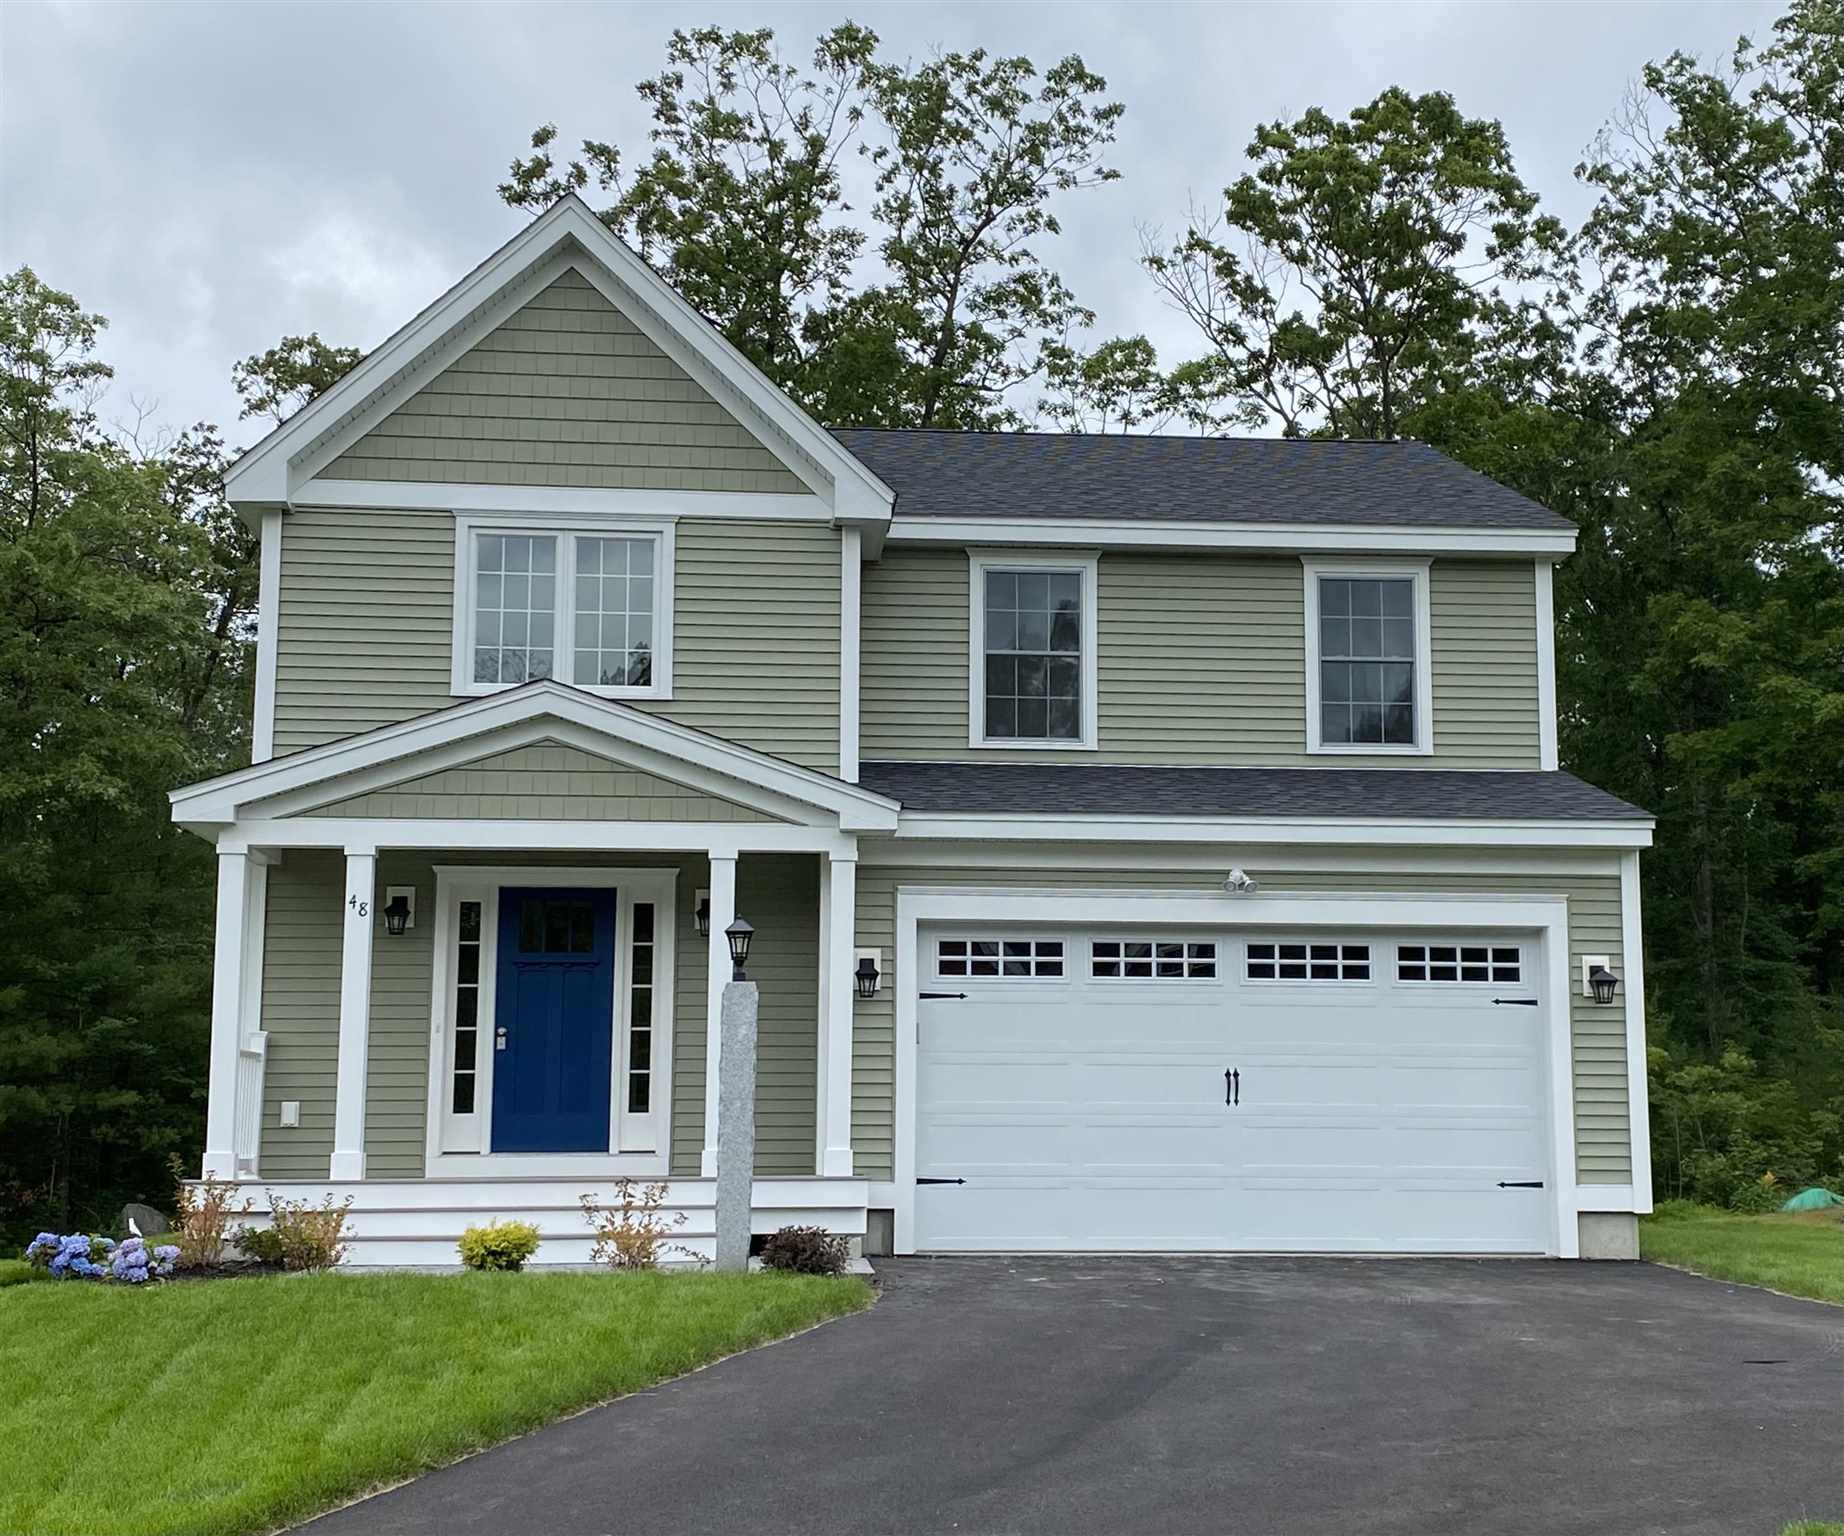 Photo of Lot 130 Lorden Commons Londonderry NH 03053